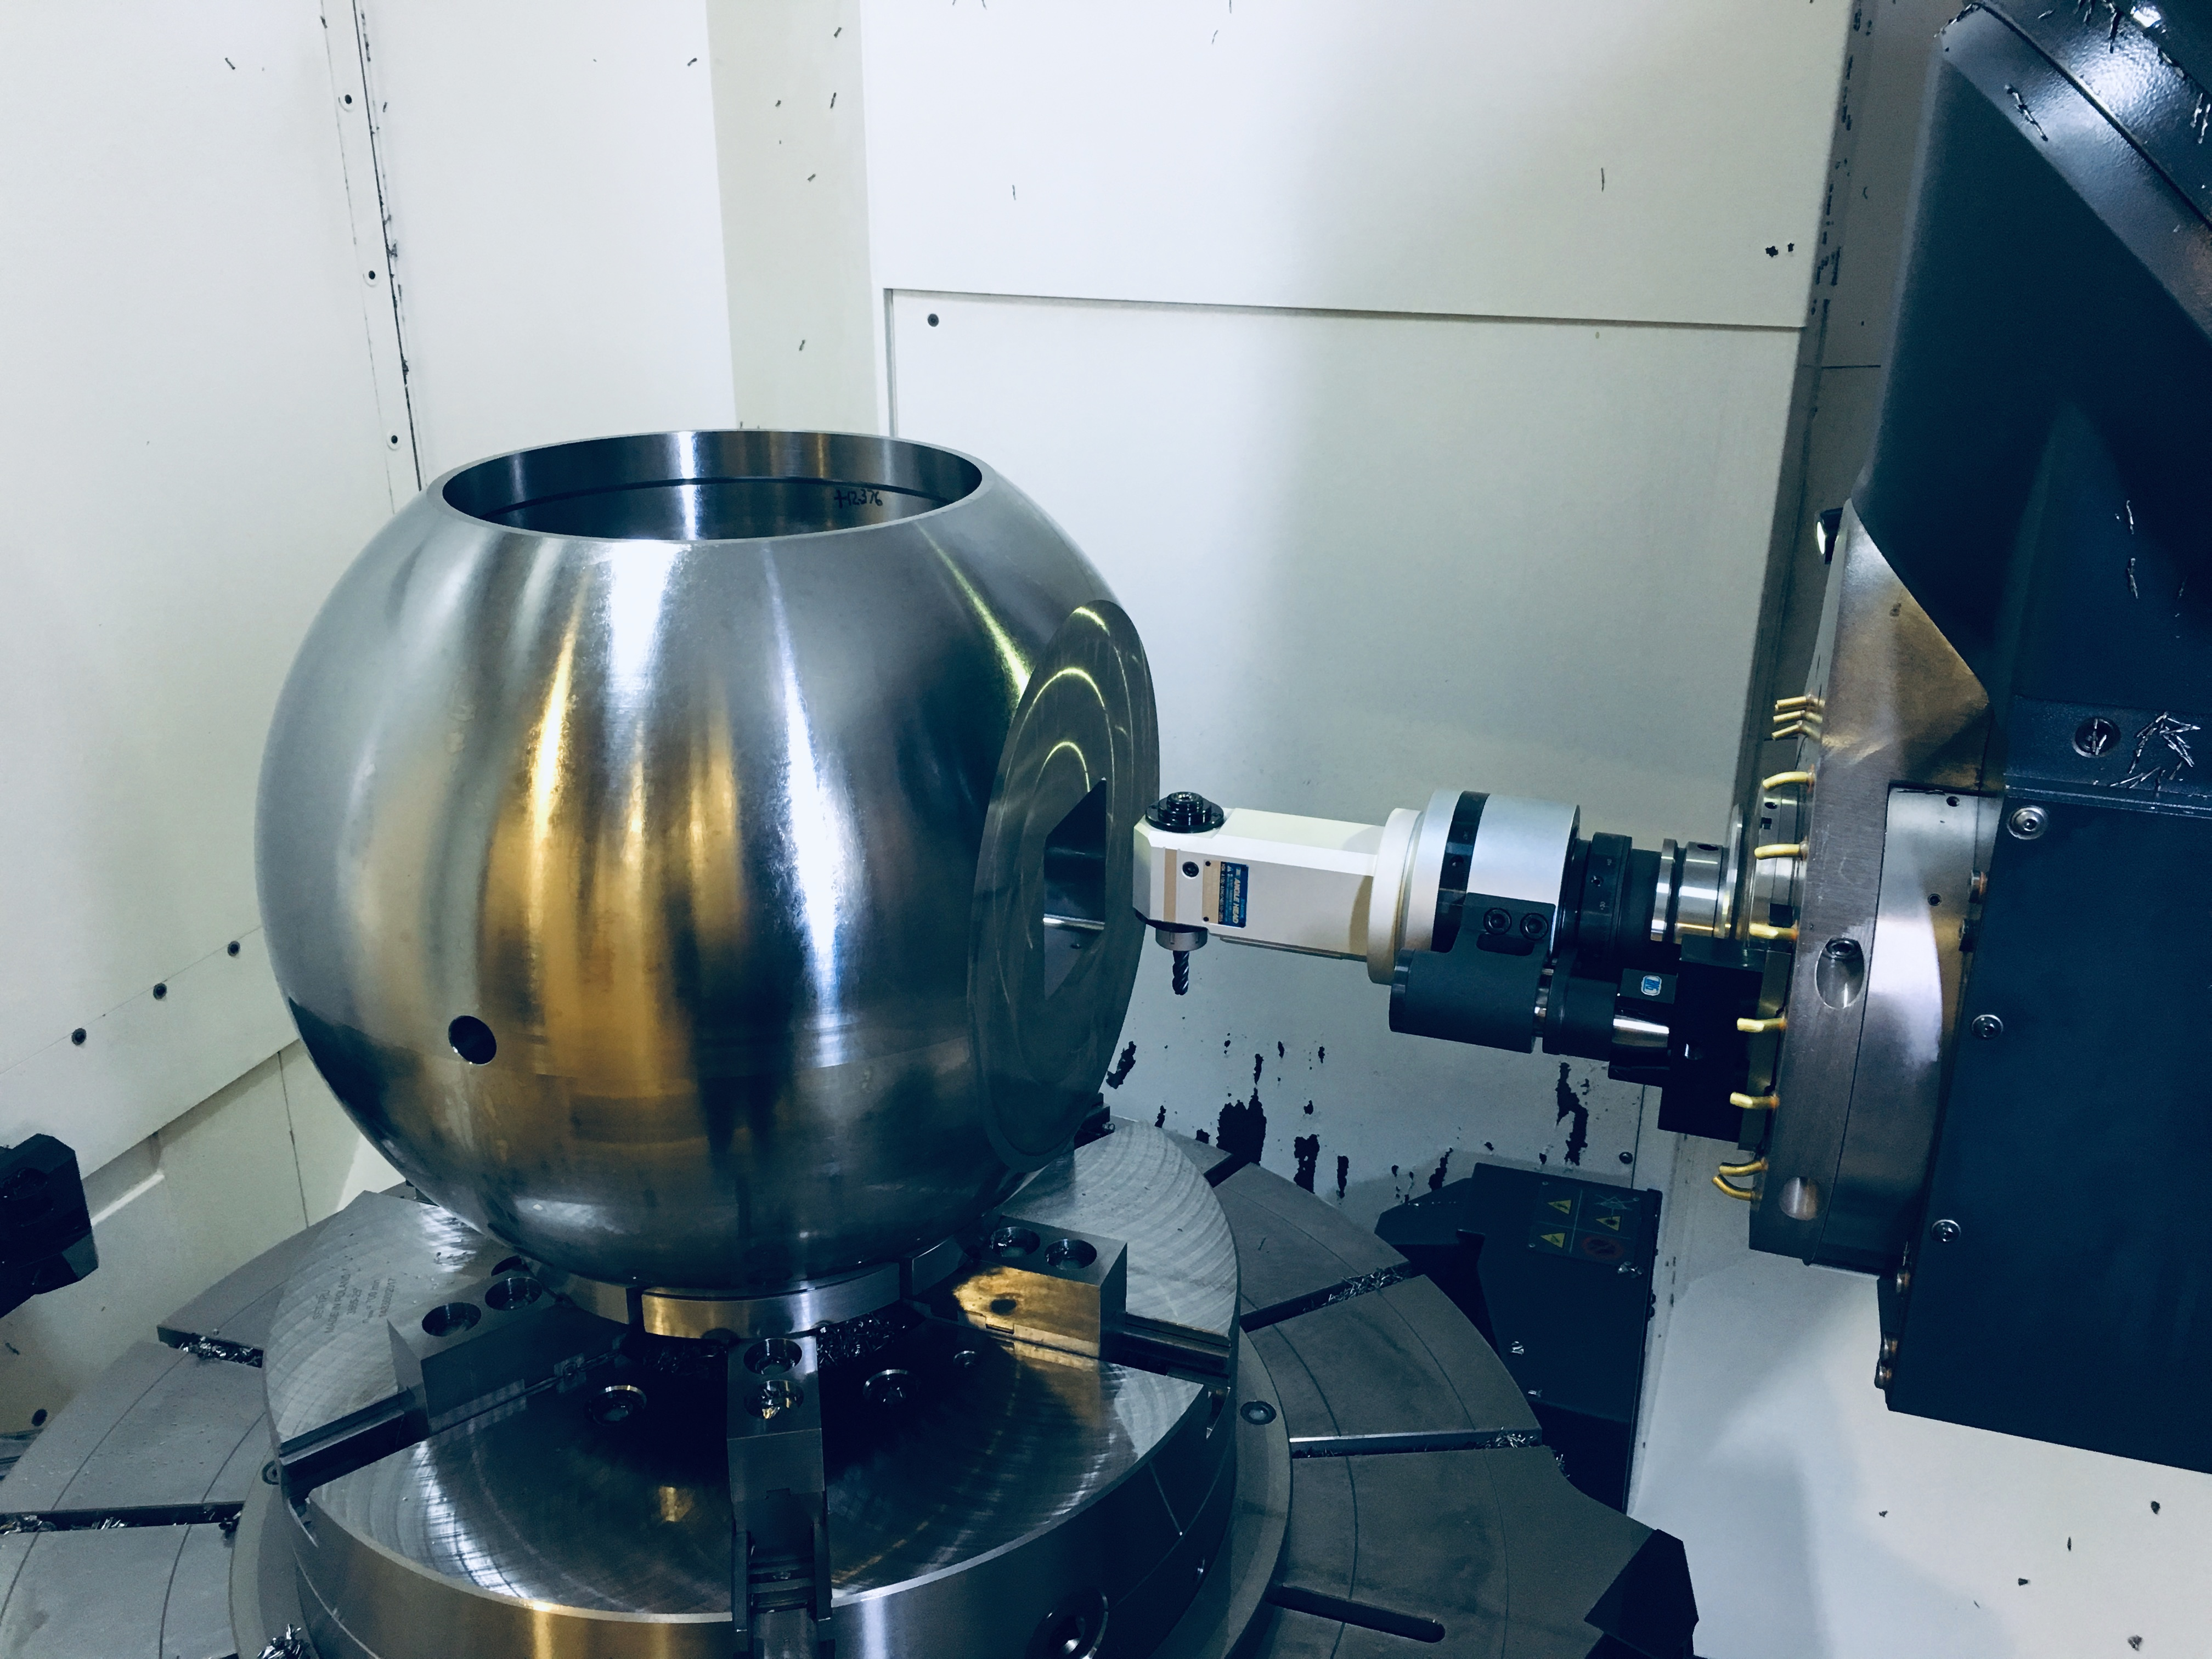 A right angle head entering a hole within a sphere shaped workpiece.